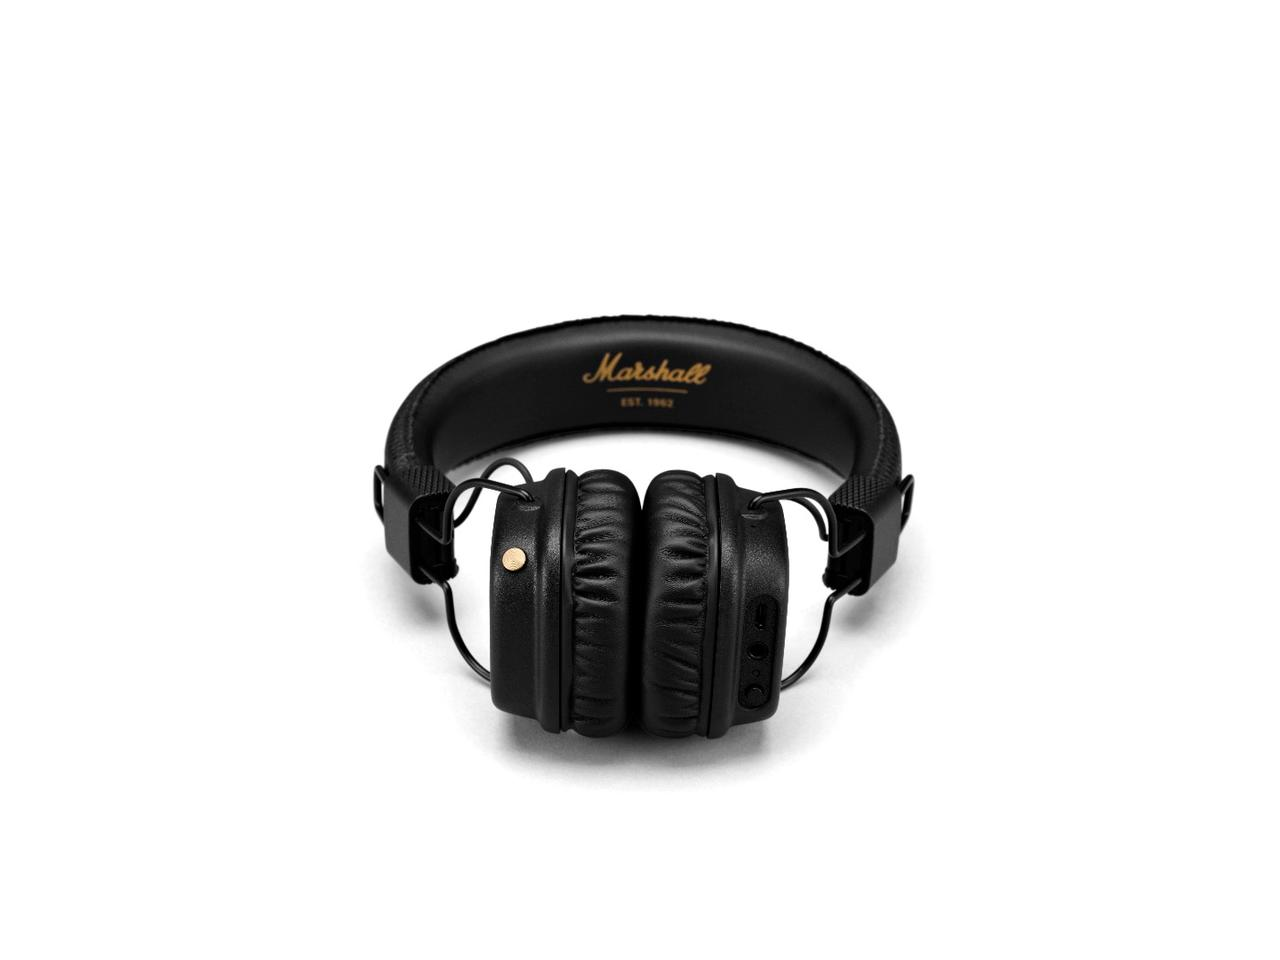 The left earcup is home to a brass-colored analog control knob which allows listeners to play, pause and shuffle tracks, and adjust volume